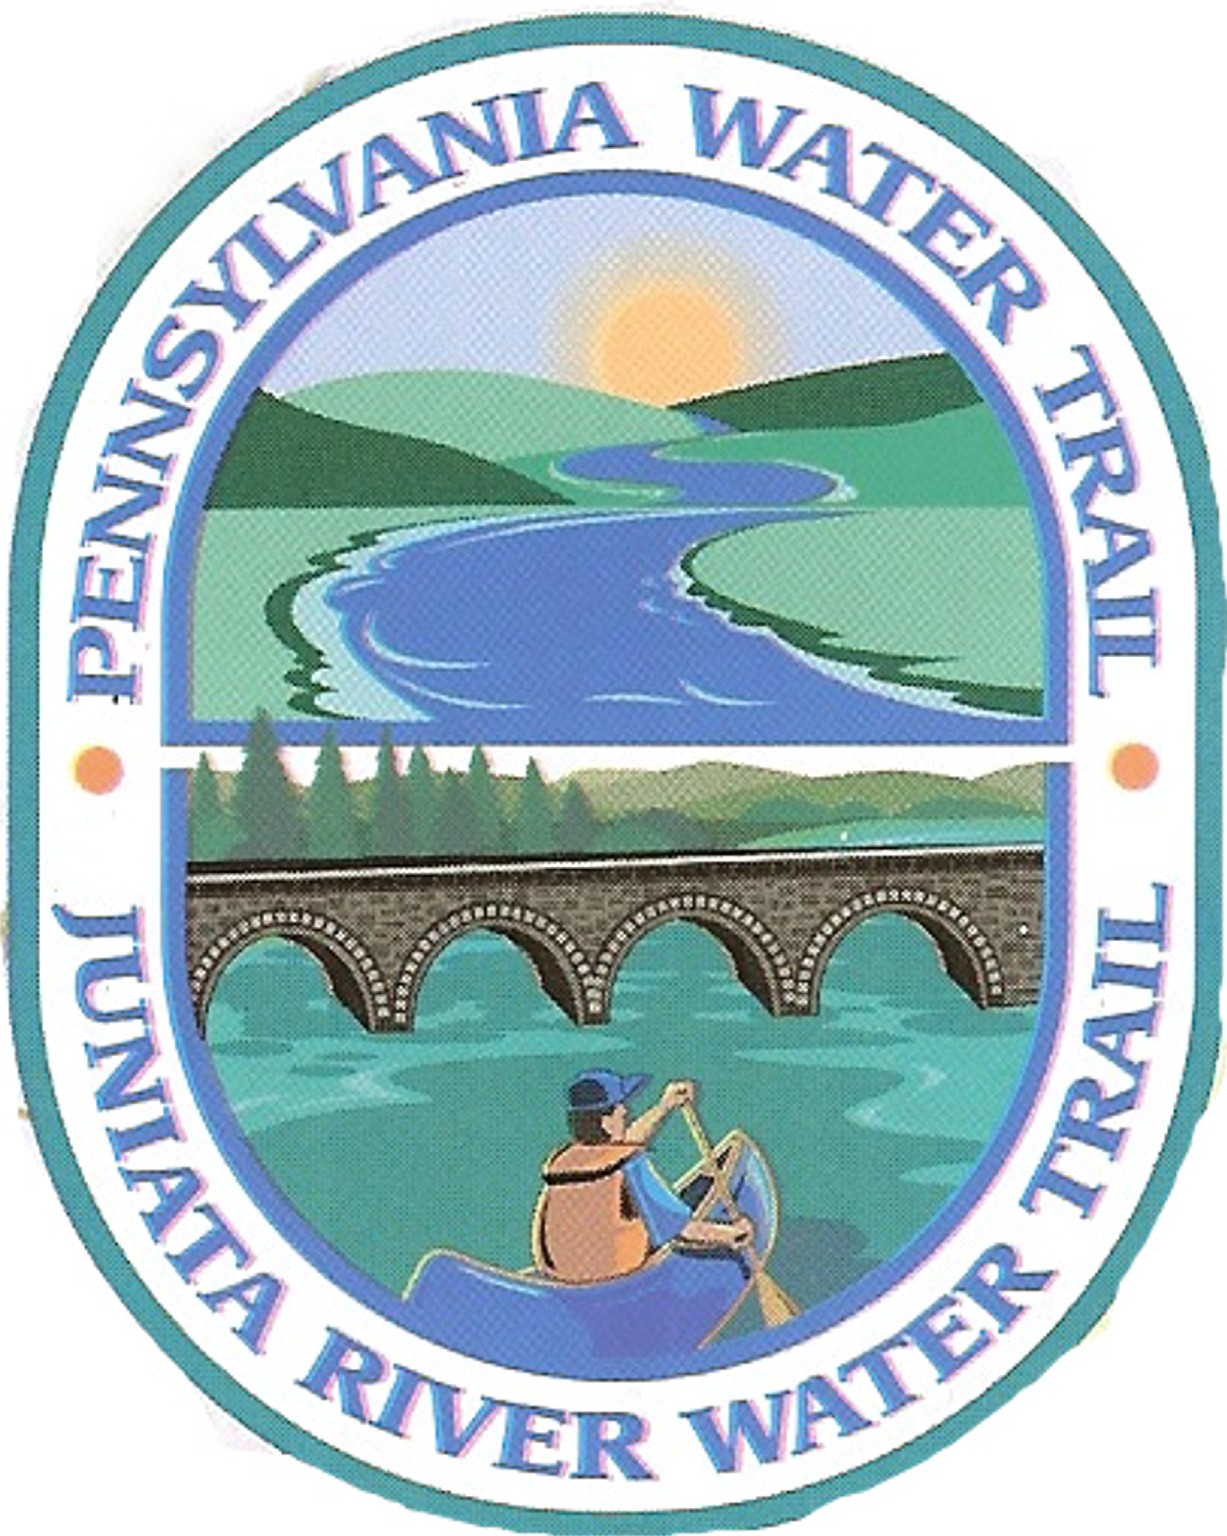 Juniata River Trail Logo.jpg (379926 bytes)